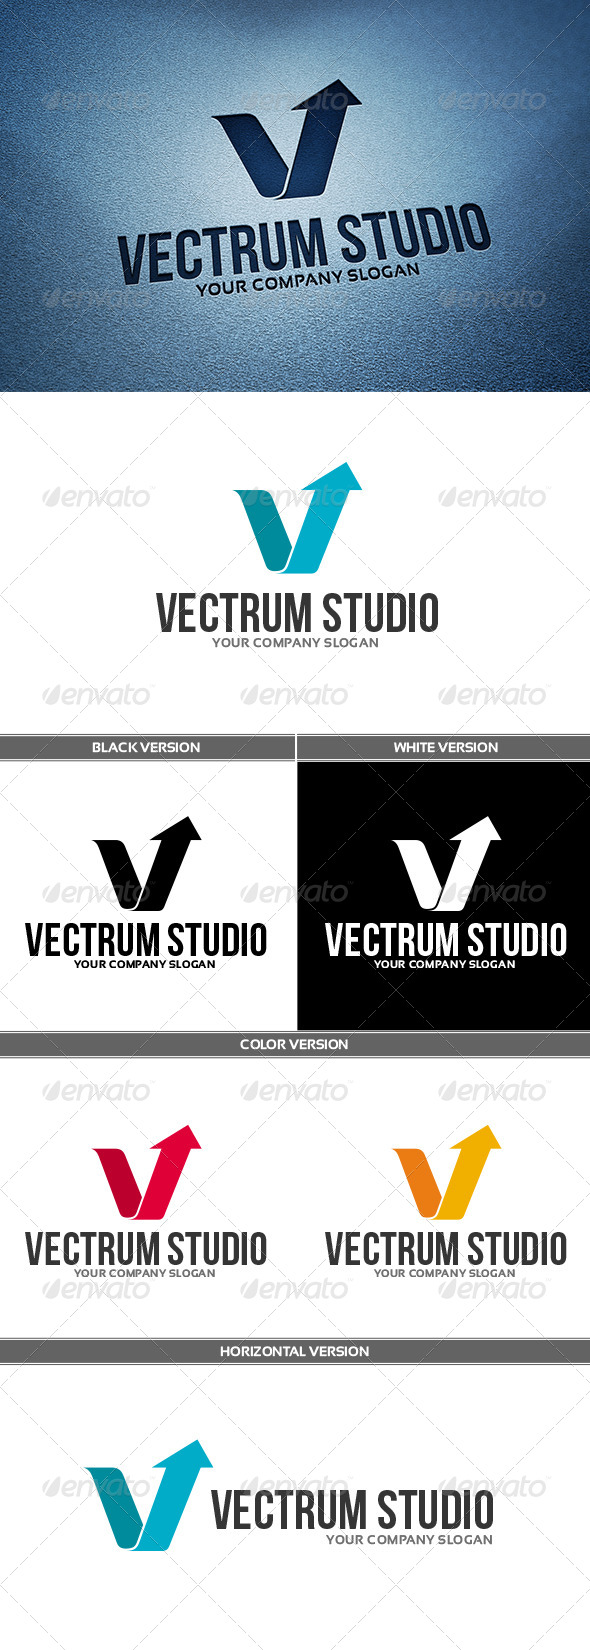 GraphicRiver VectrumStudio Logo 6748862